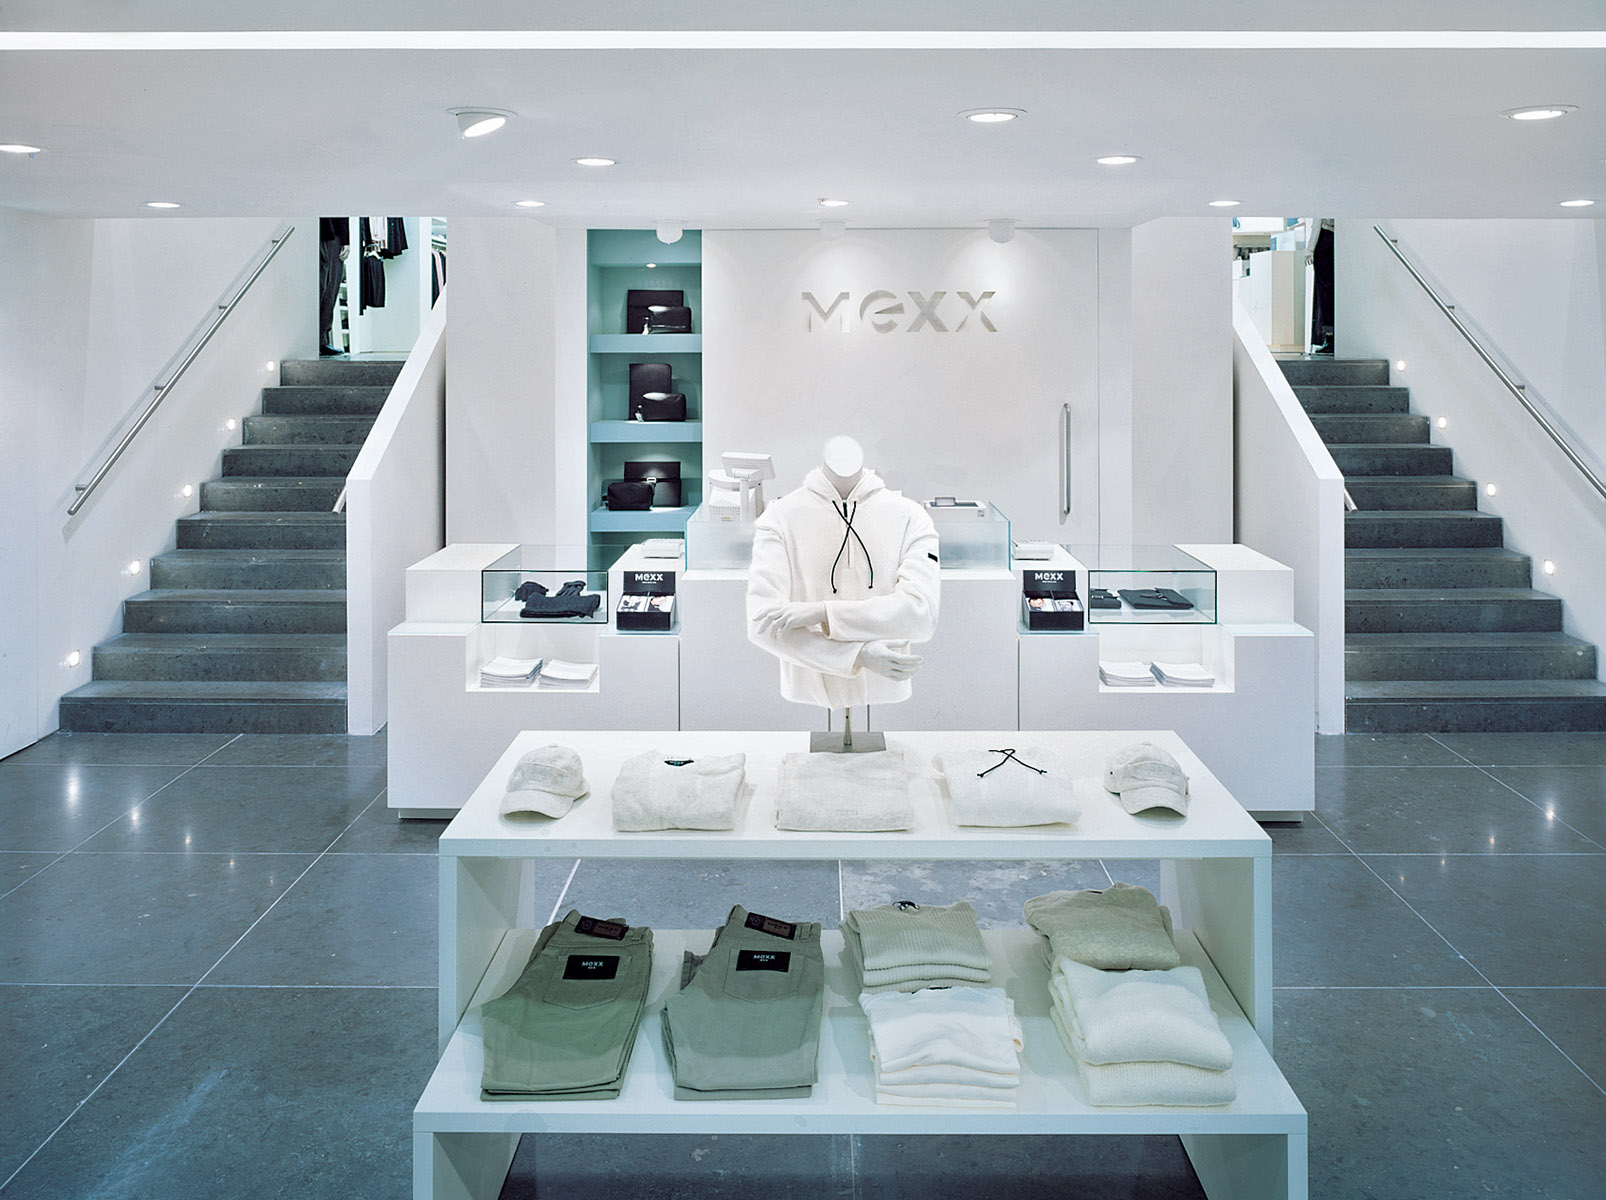 Retail interior for leading high street fashion brand.Client: Mexx Ltd